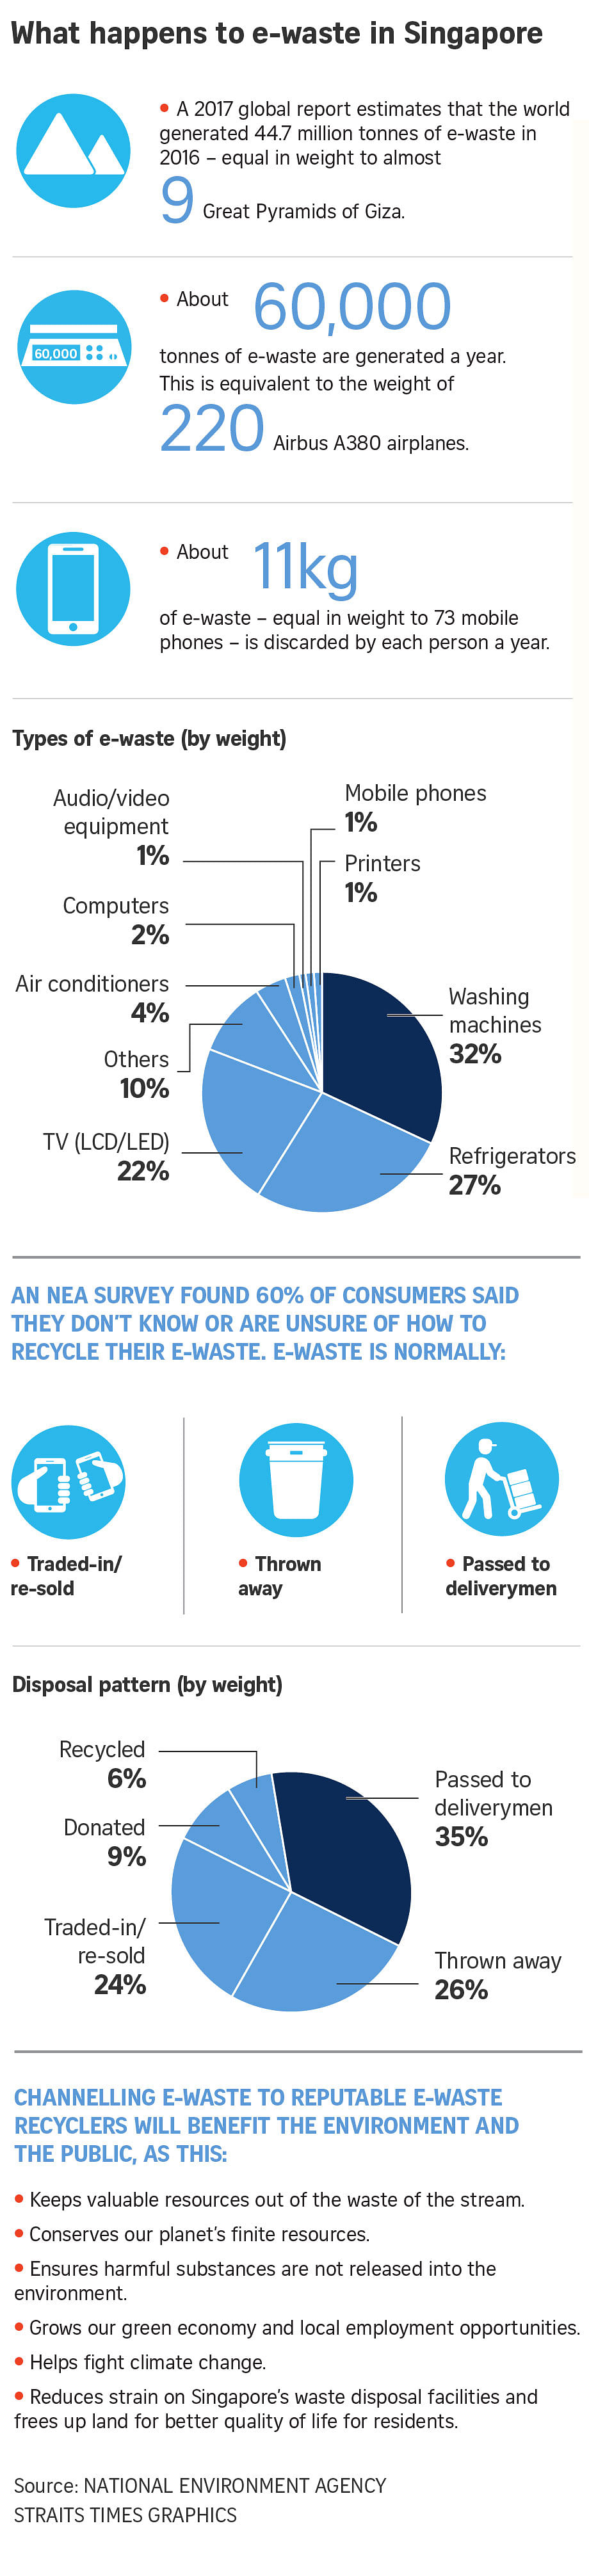 Regulations will be introduced to ensure e-waste is recycled